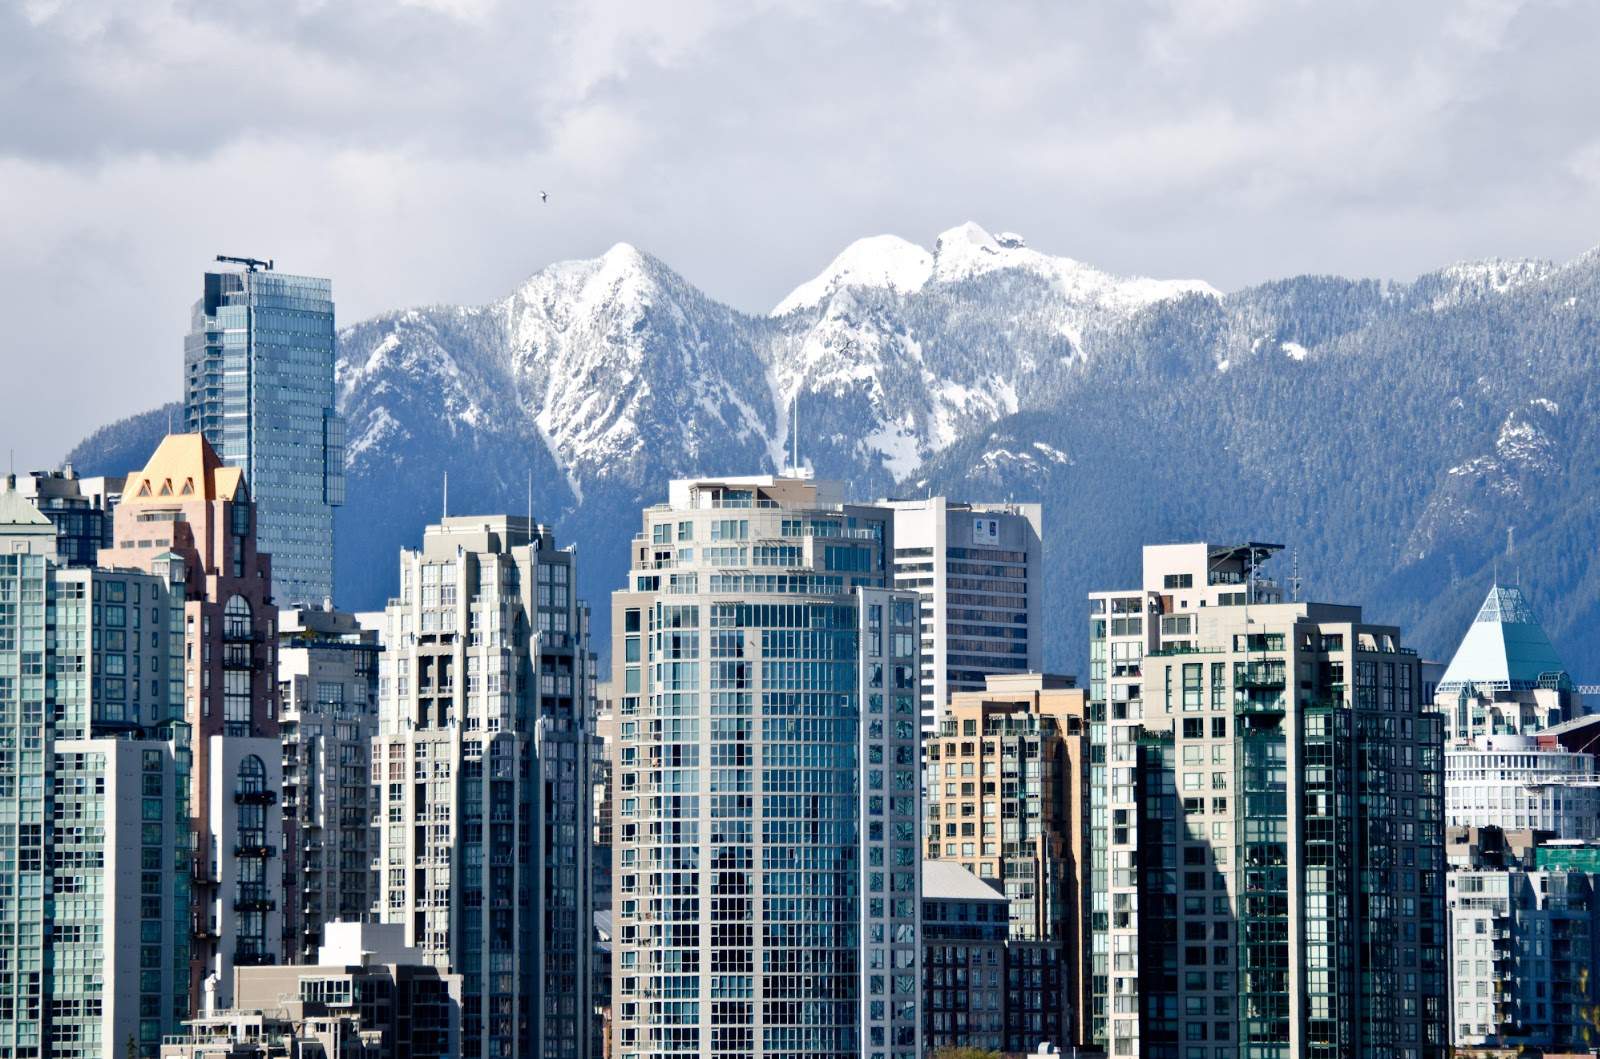 Pelalusa: Downtown Vancouver and the North Shore